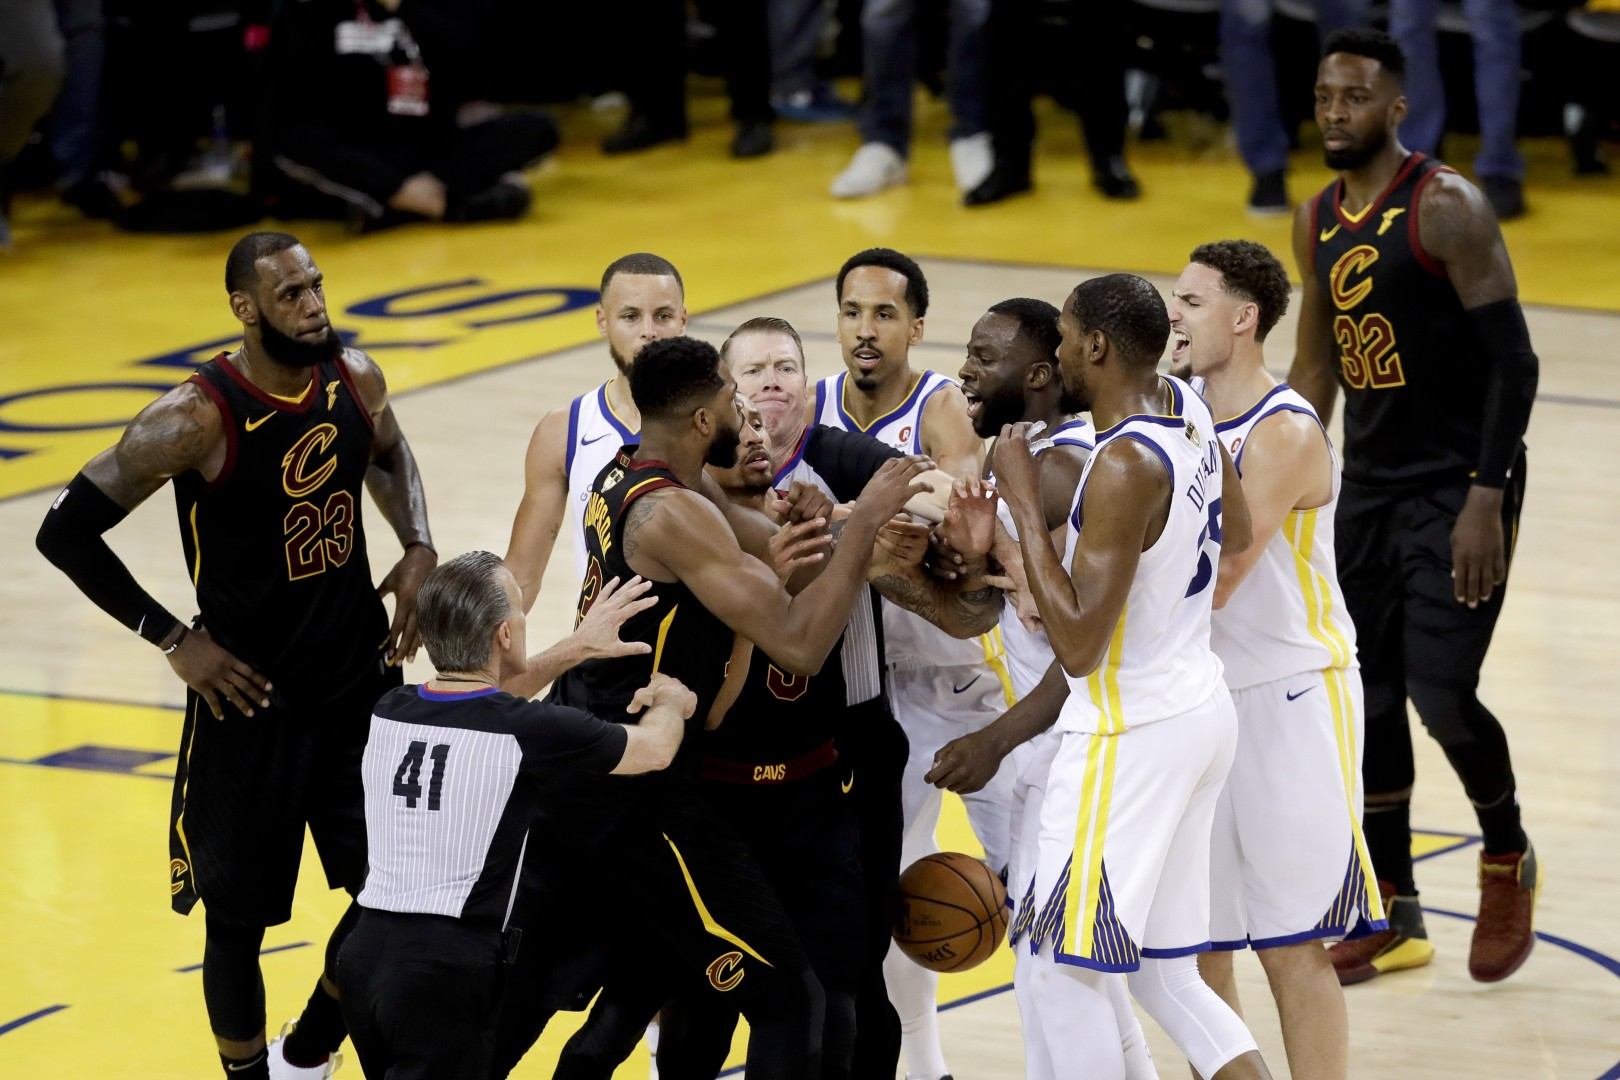 d82294259ab3 Tristan Thompson  punches Draymond Green  in LeBron James  ESPY Awards  after-party altercation